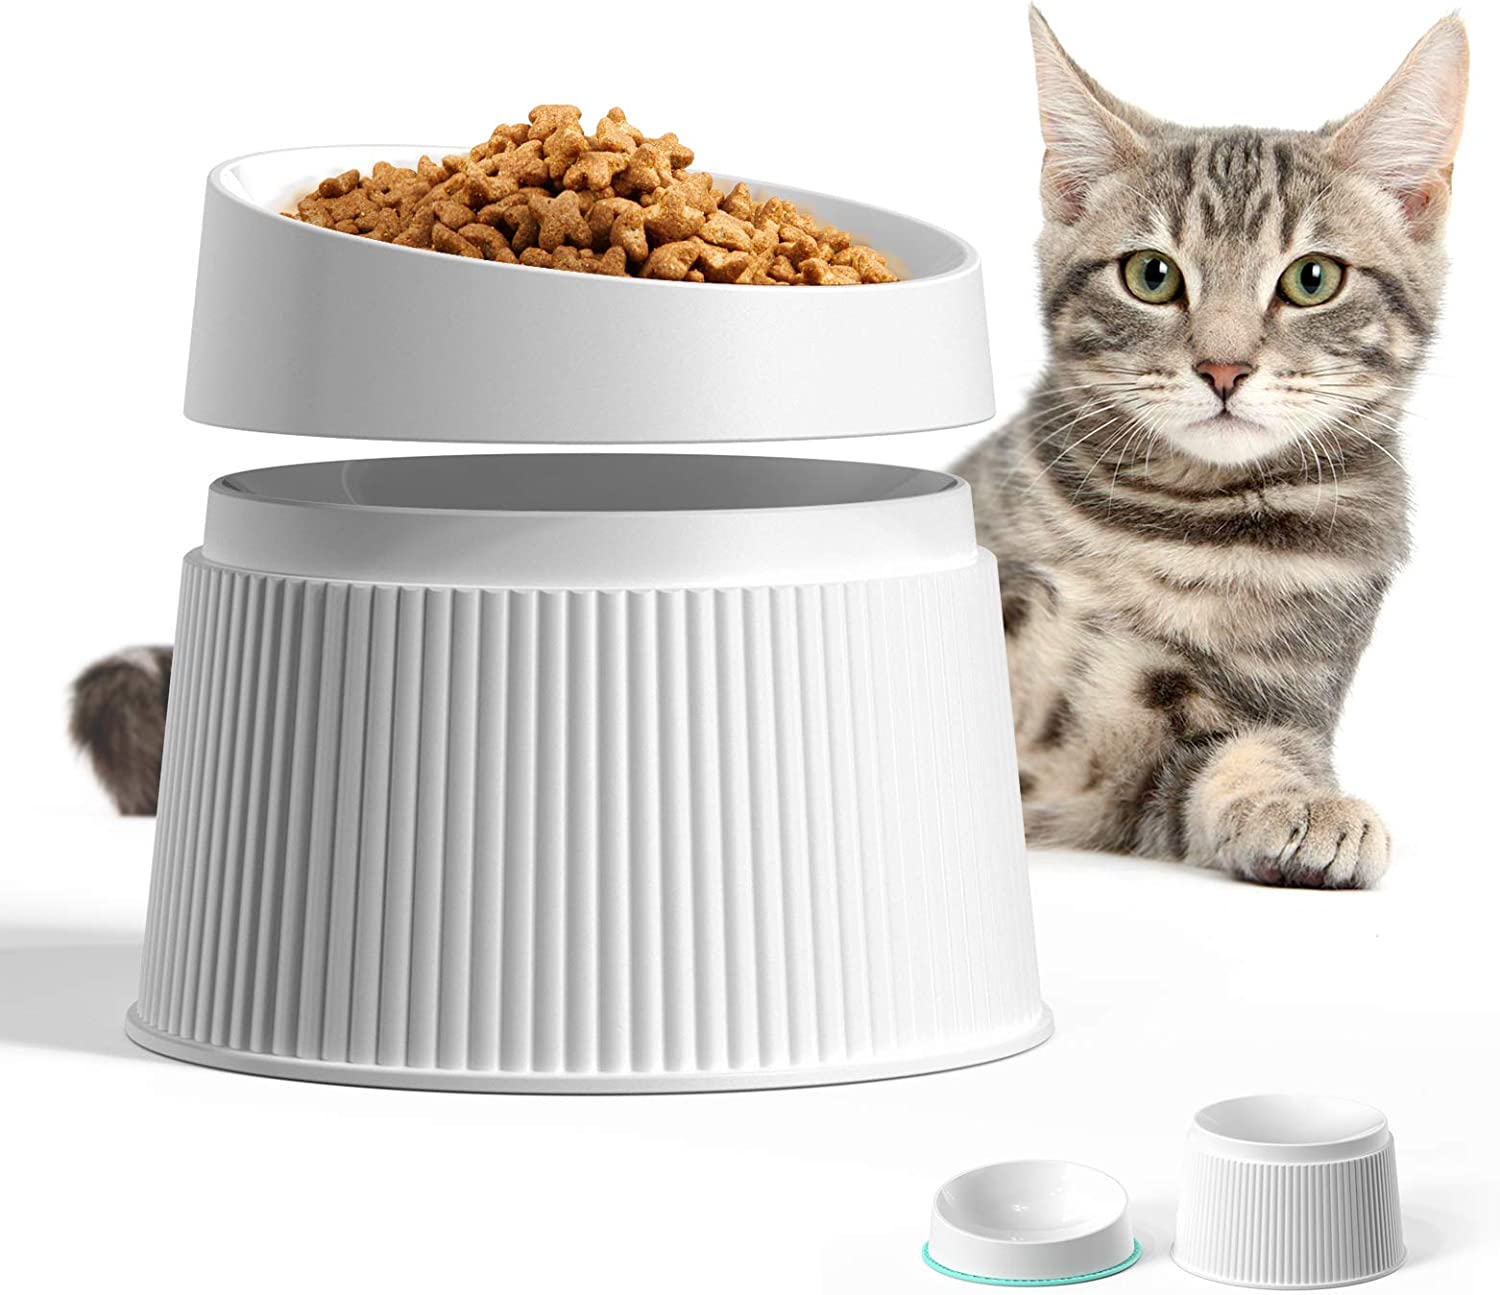 uahpet Raised Cat Food Bowl Non Slip Cat Dish 17°Title Angle Protect Cat's Spine Whisker Stress Free Anti Vomiting Backflow Prevention Dishwasher Available Pet Bowl